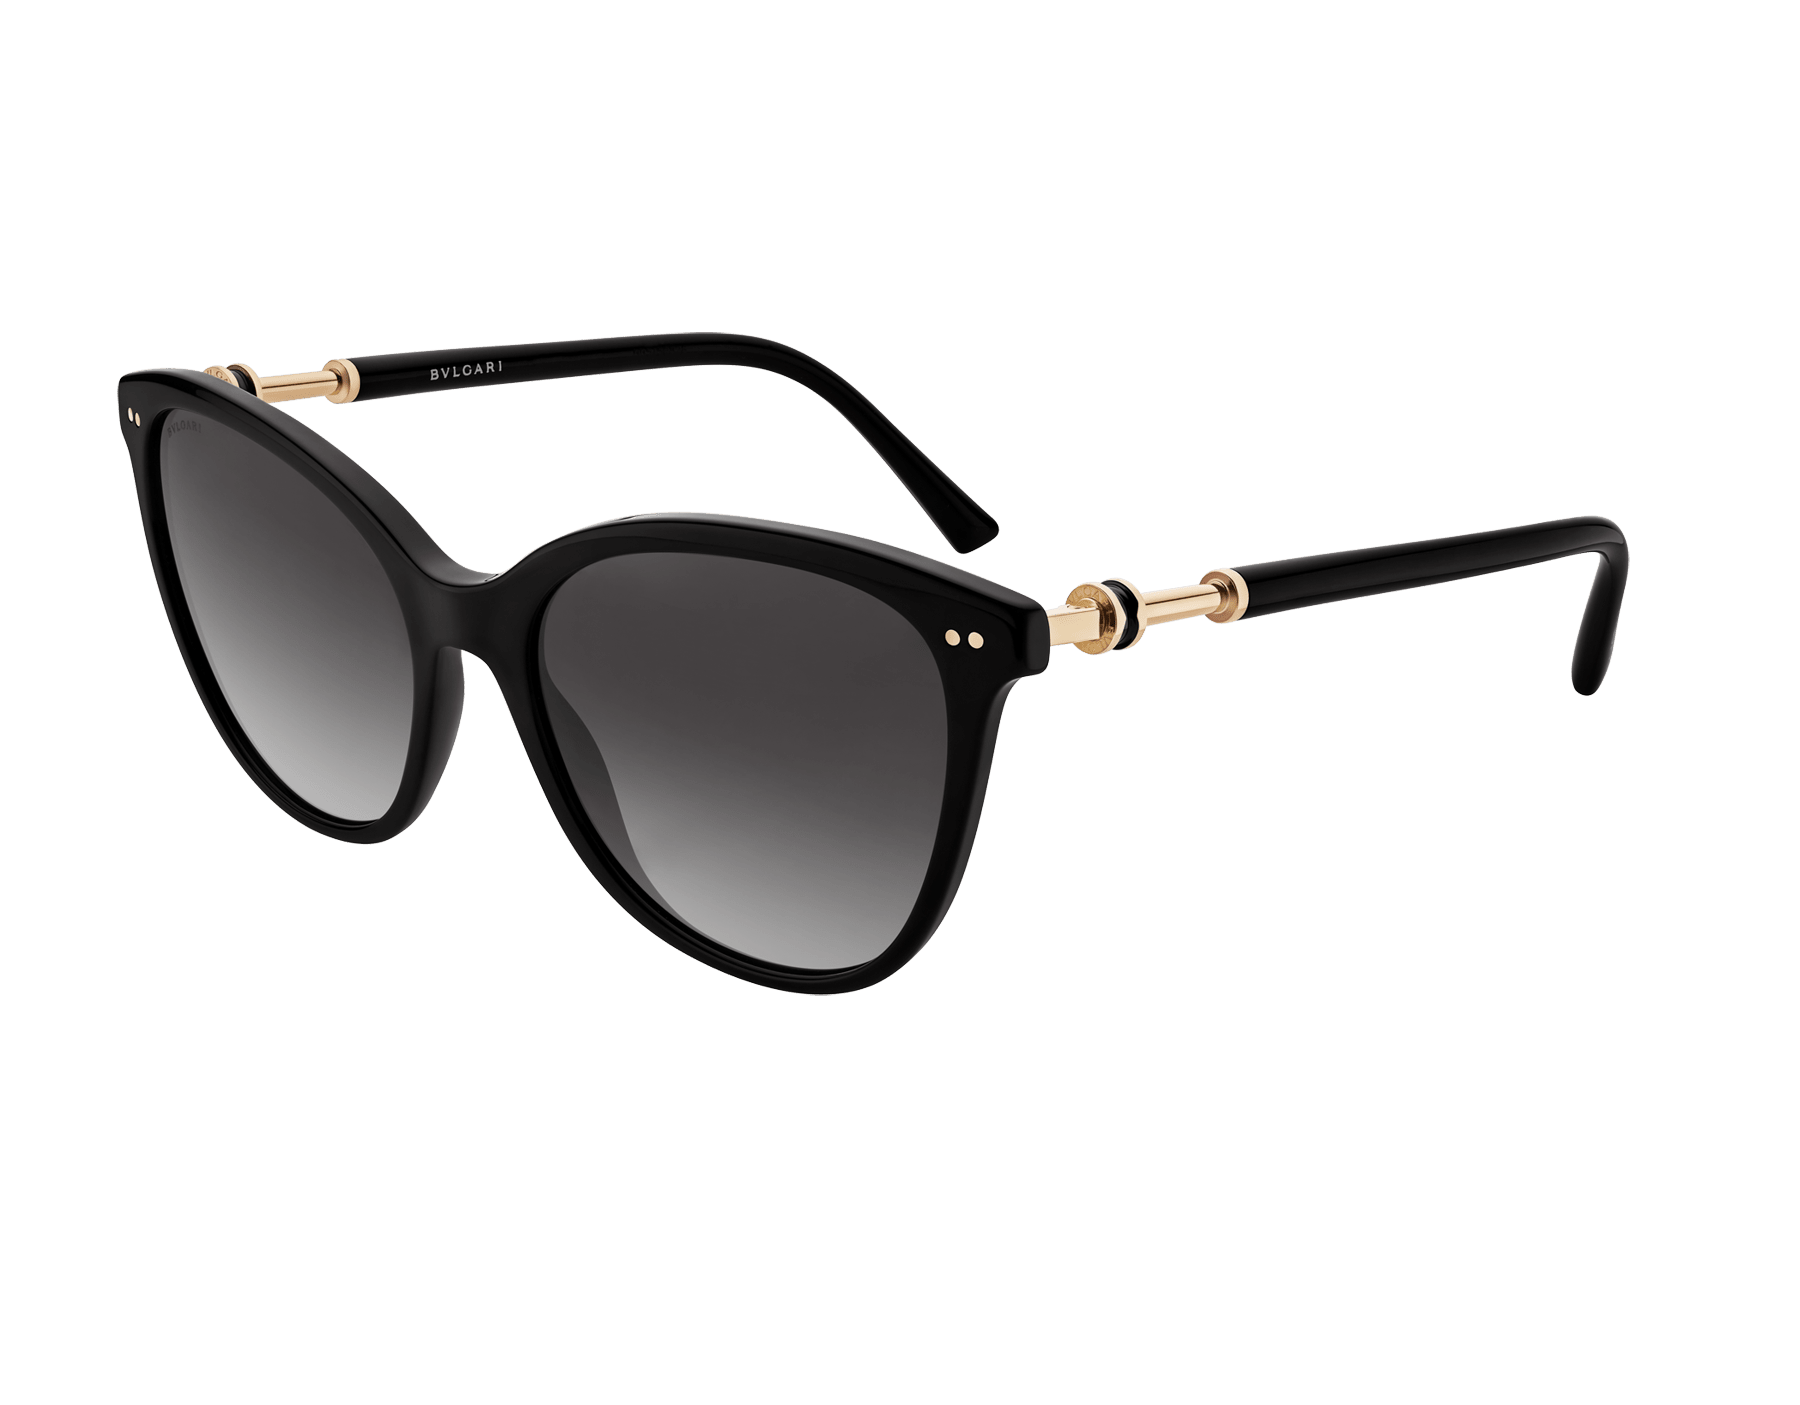 B.zero1 acetate cat-eye sunglasses 904085 image 1